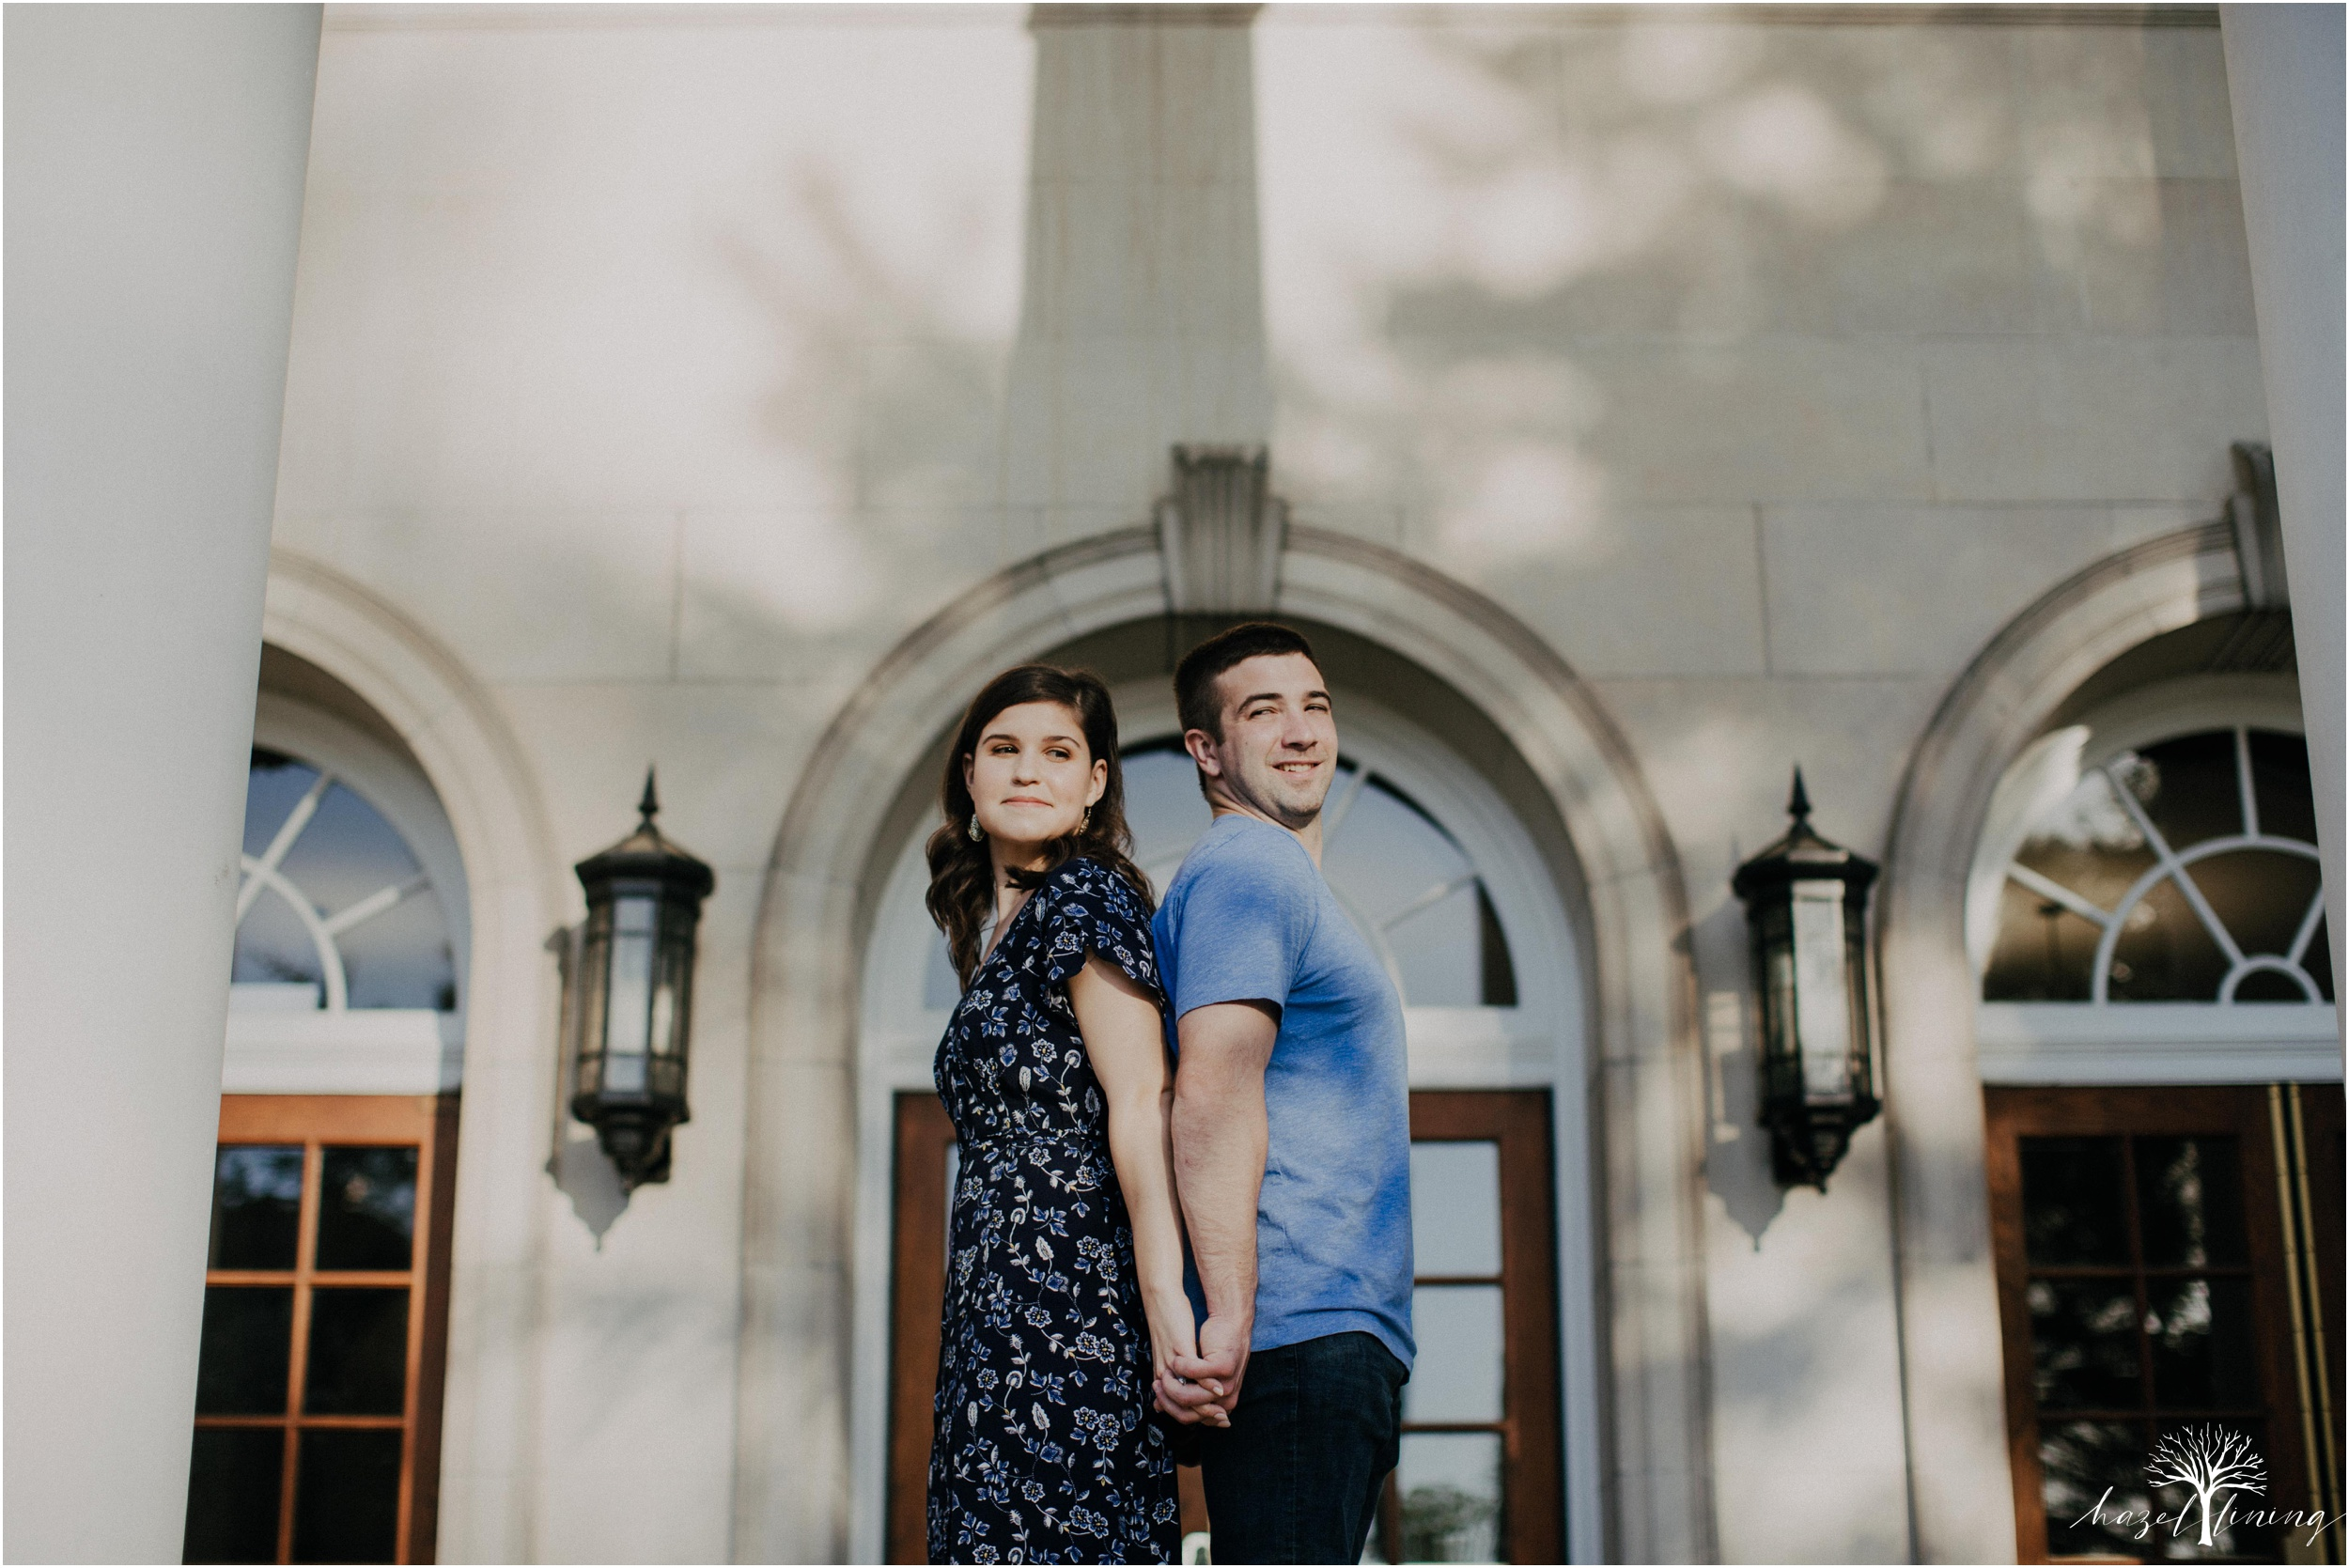 ellyn-jack-kutztown-university-of-pennsylvania-engagement-session-hazel-lining-photography-destination-elopement-wedding-engagement-photography_0220.jpg